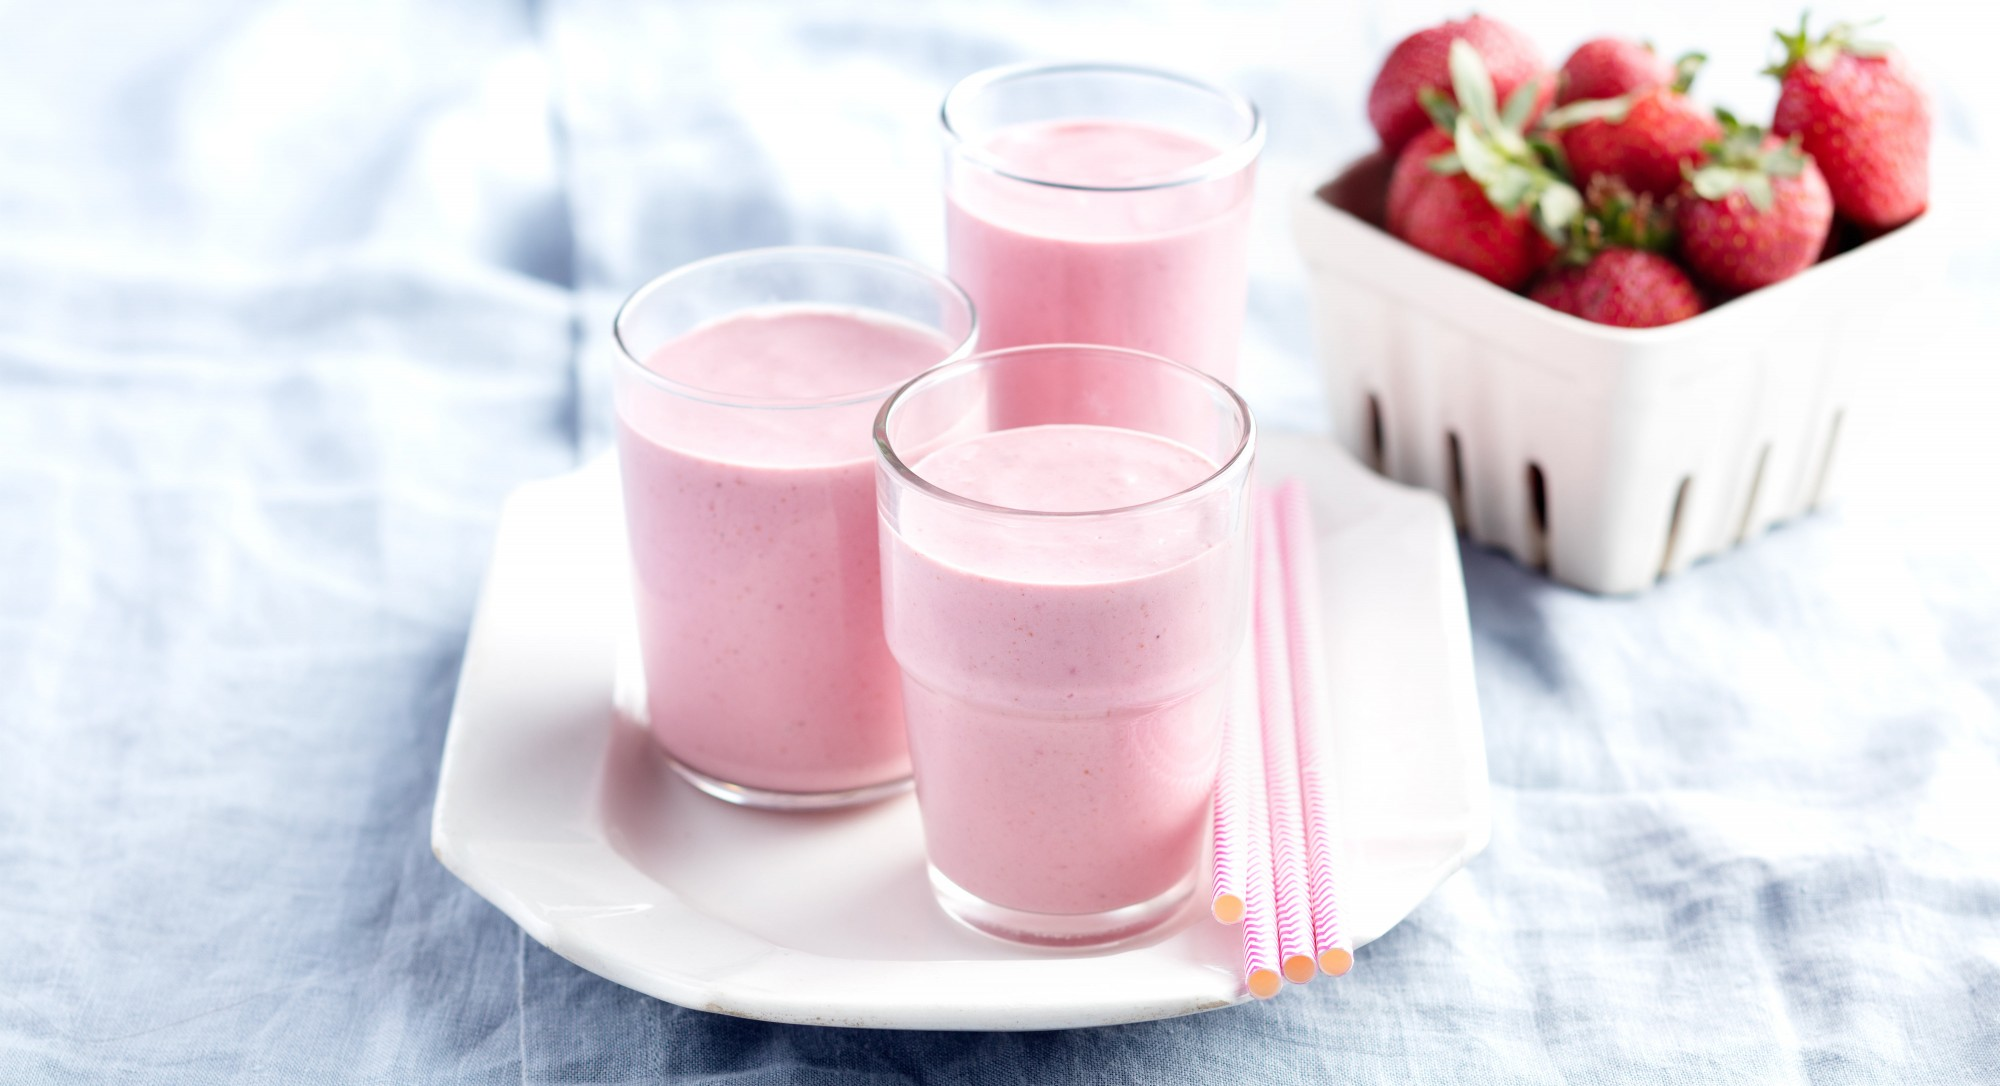 A Perfectly Pink Pomegranate Smoothie, Just in Time for Valentine's Day